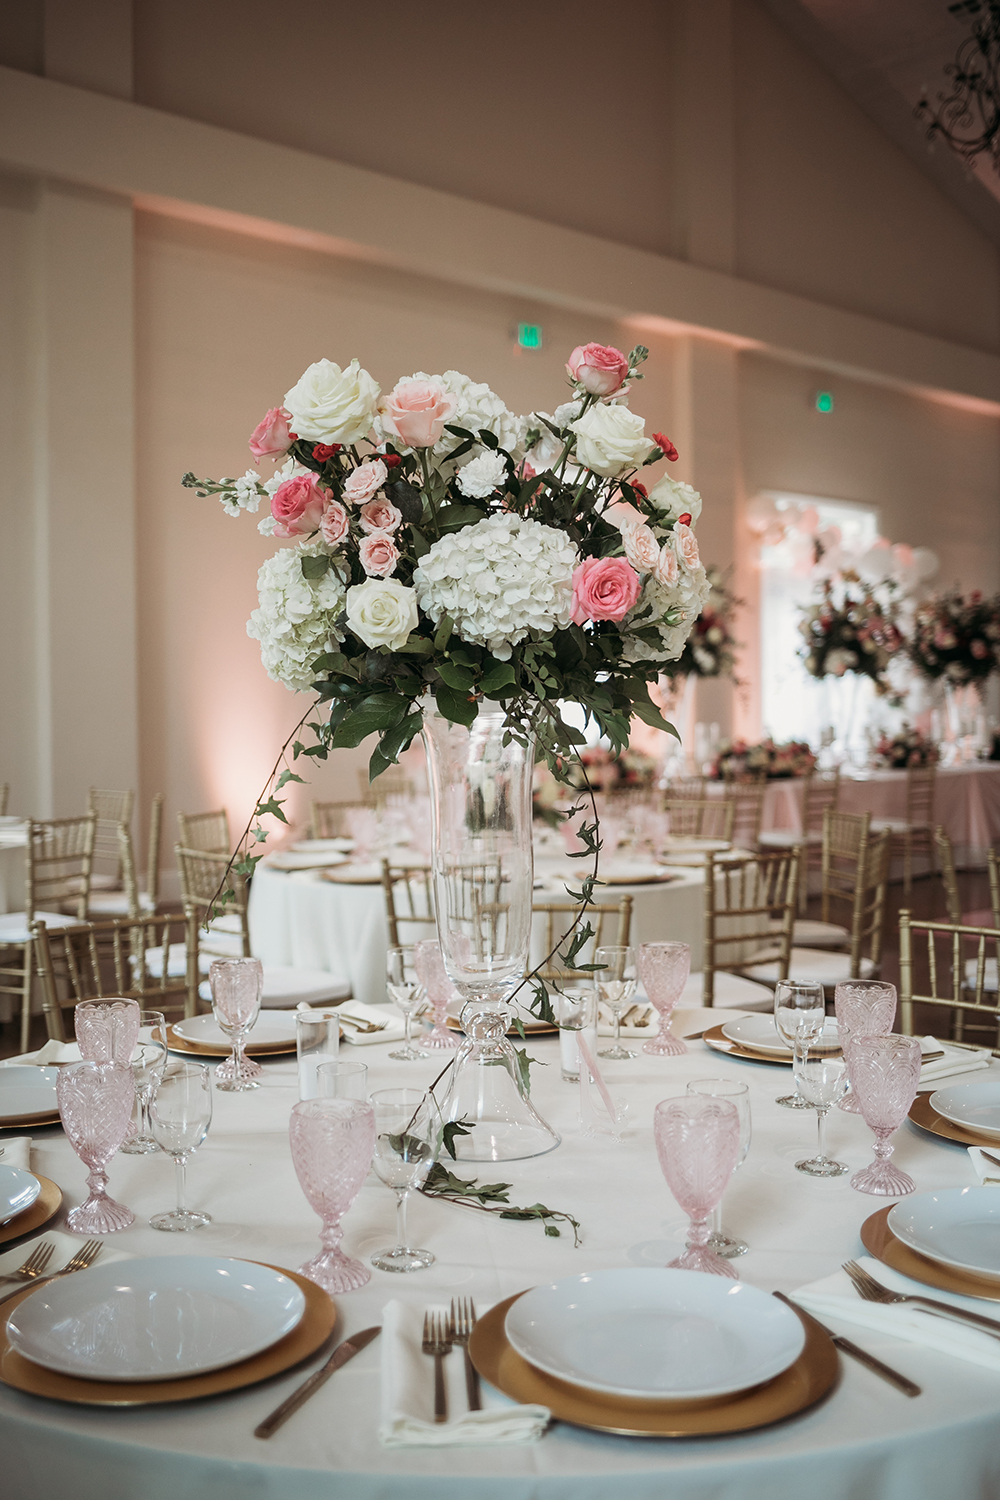 wedding reception decor - tablescapes